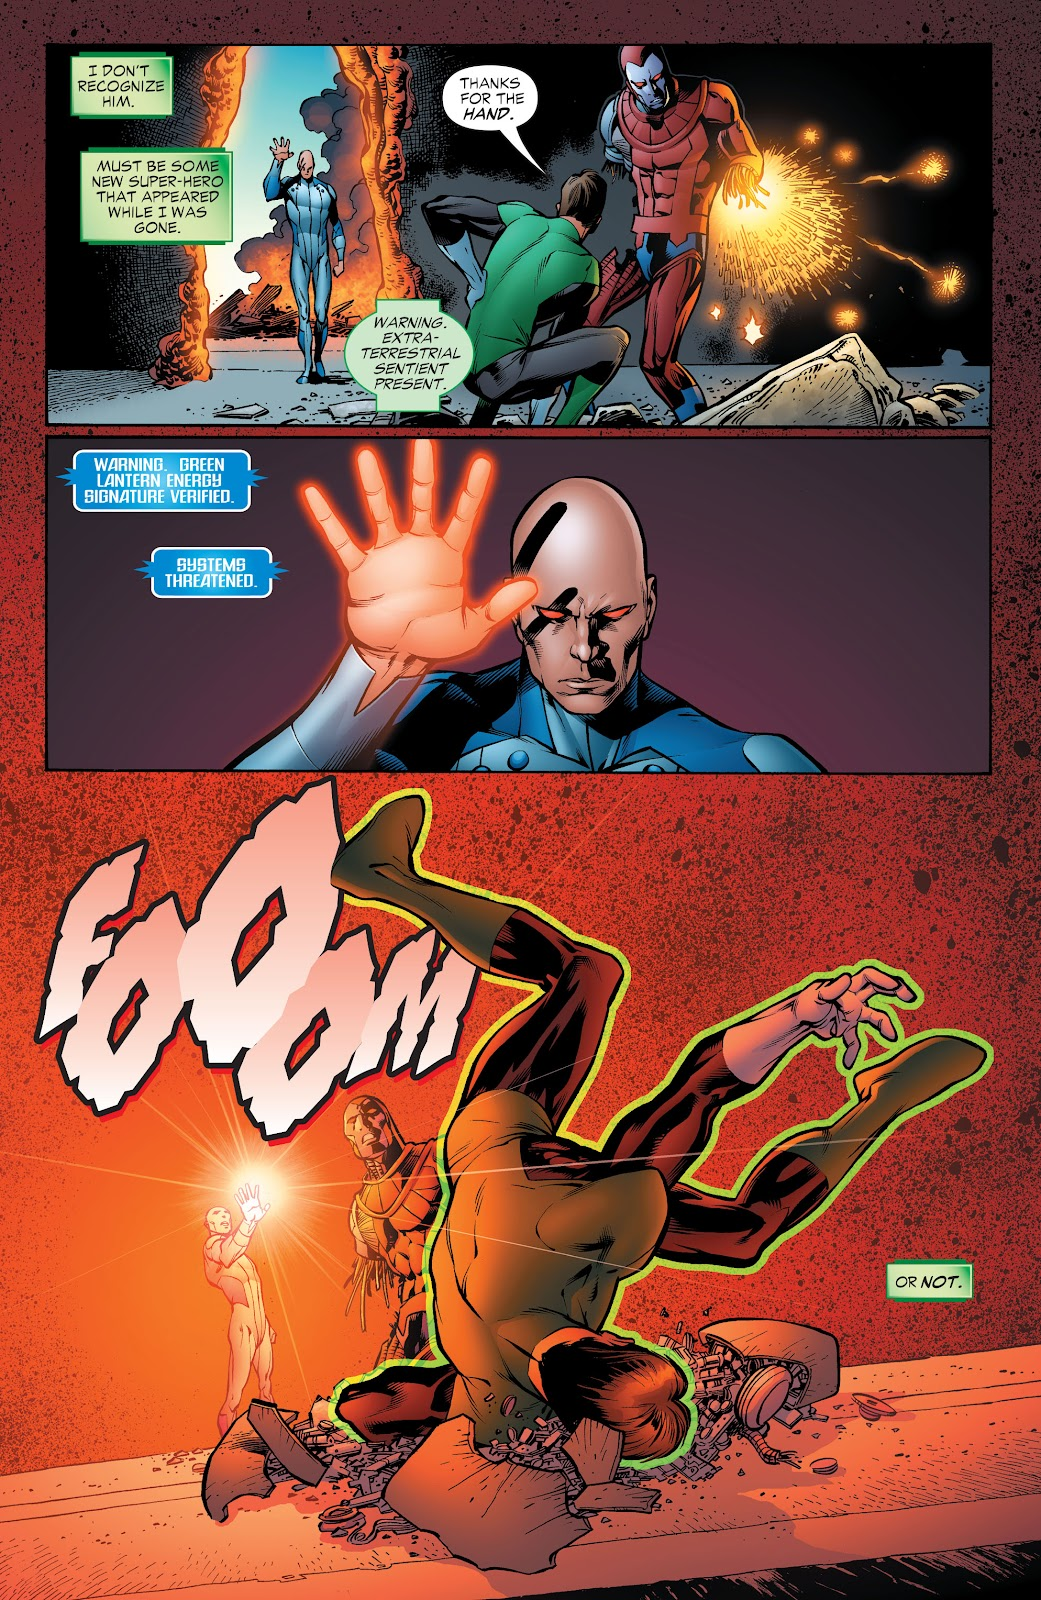 Read online Green Lantern by Geoff Johns comic -  Issue # TPB 1 (Part 4) - 43